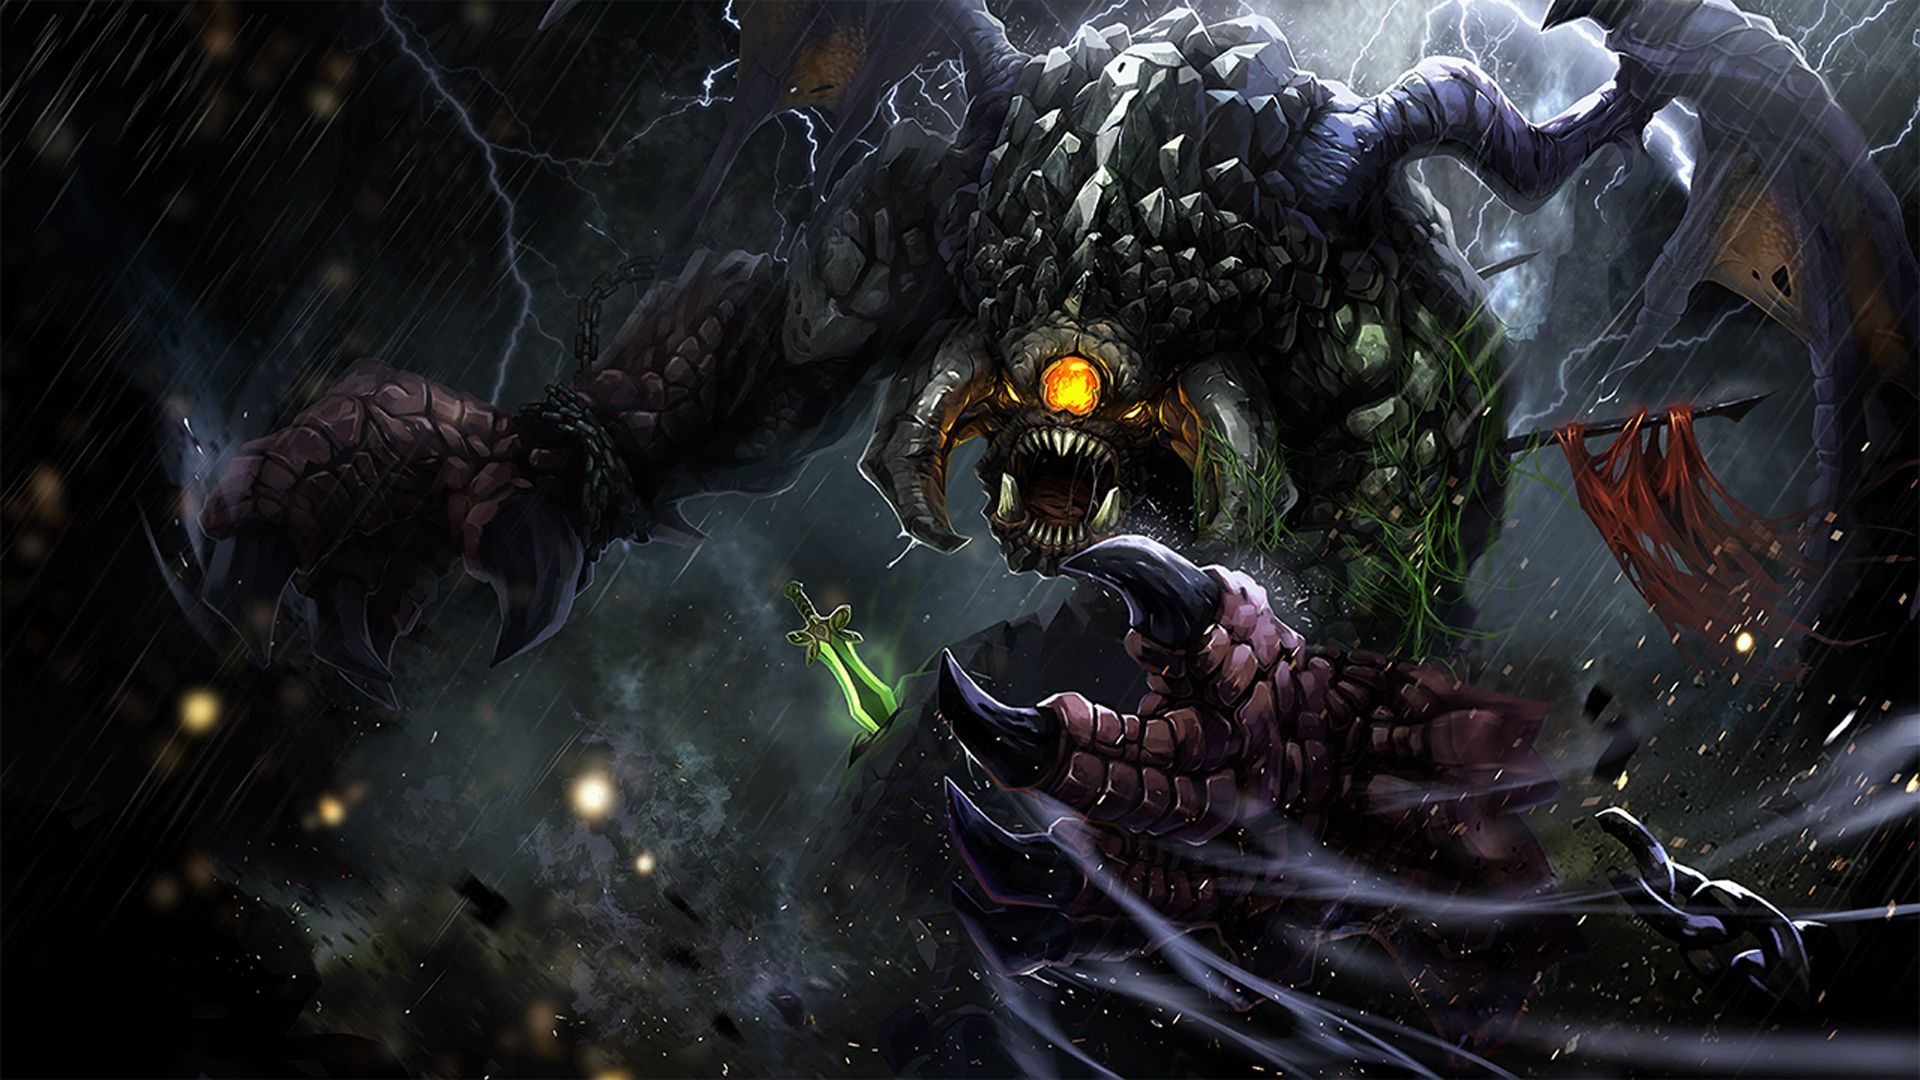 Dota 2 High Resolution Wallpapers 3d Wallpaper Resolutions Greed Mythology Concept Art Conceptual